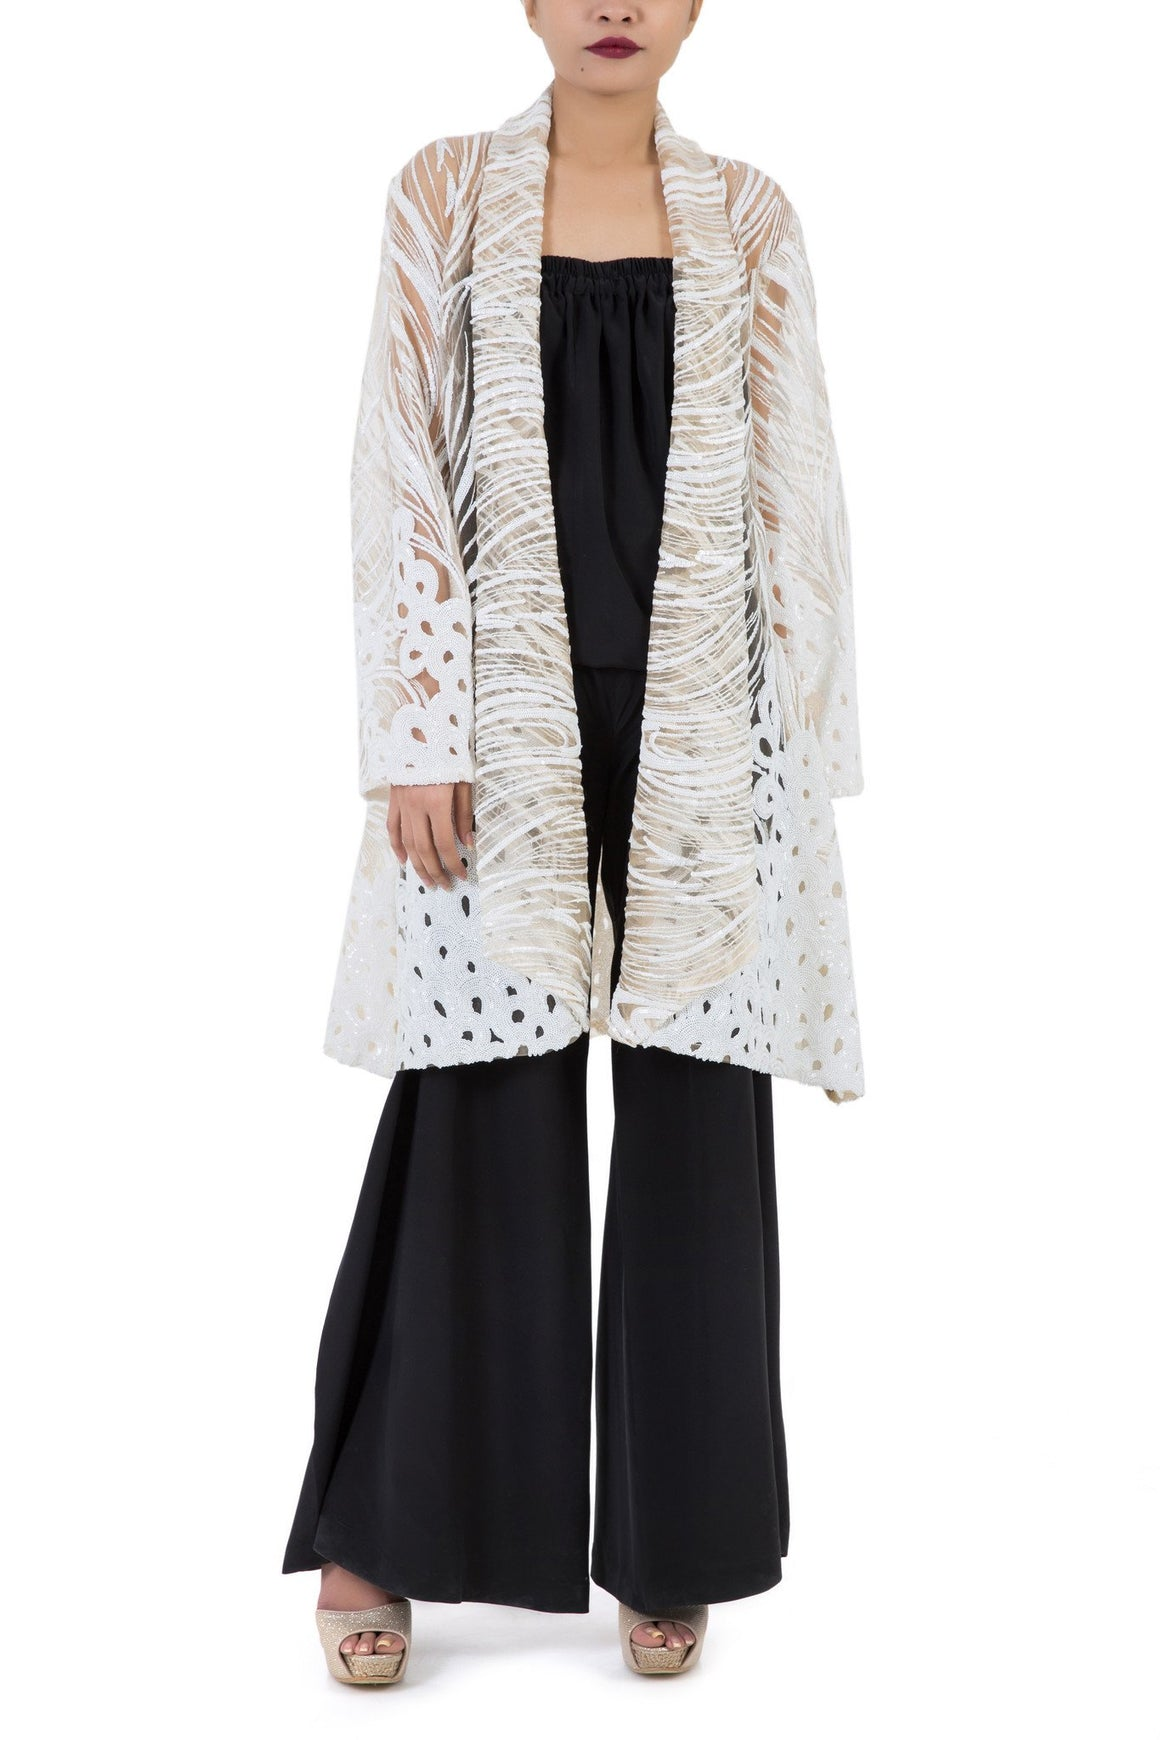 Mehreen Noorani - Starry Night Cream Net Coat